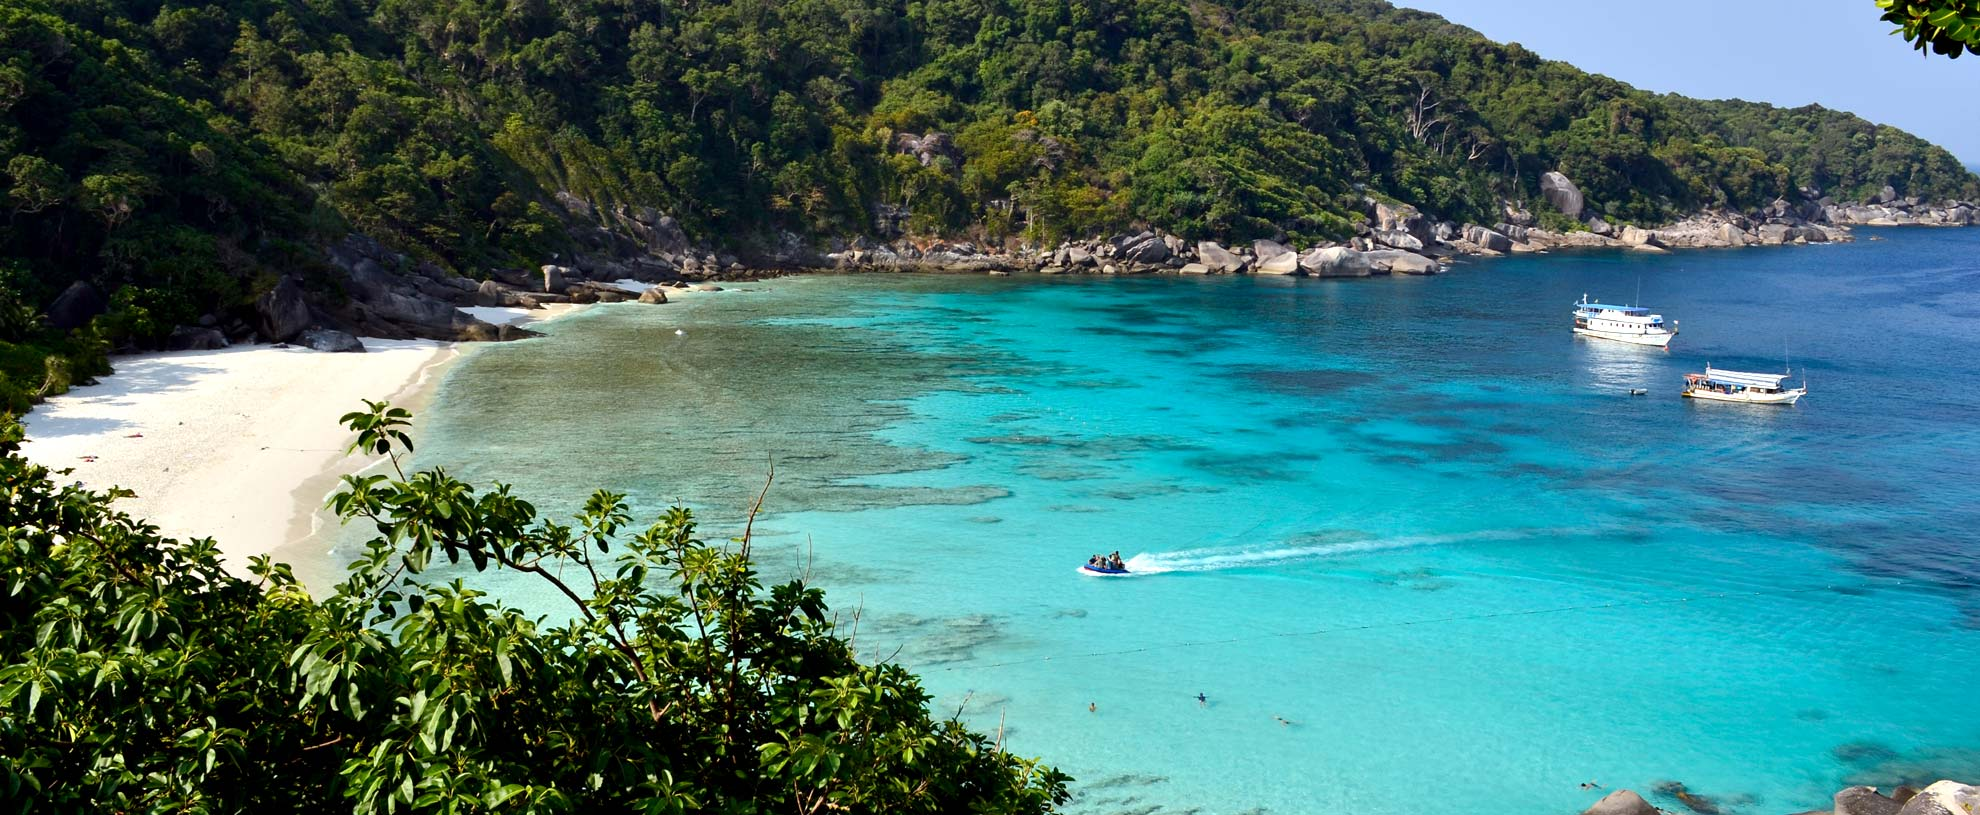 Donald Duck bay and  beach from Similan Island no.8 lookout